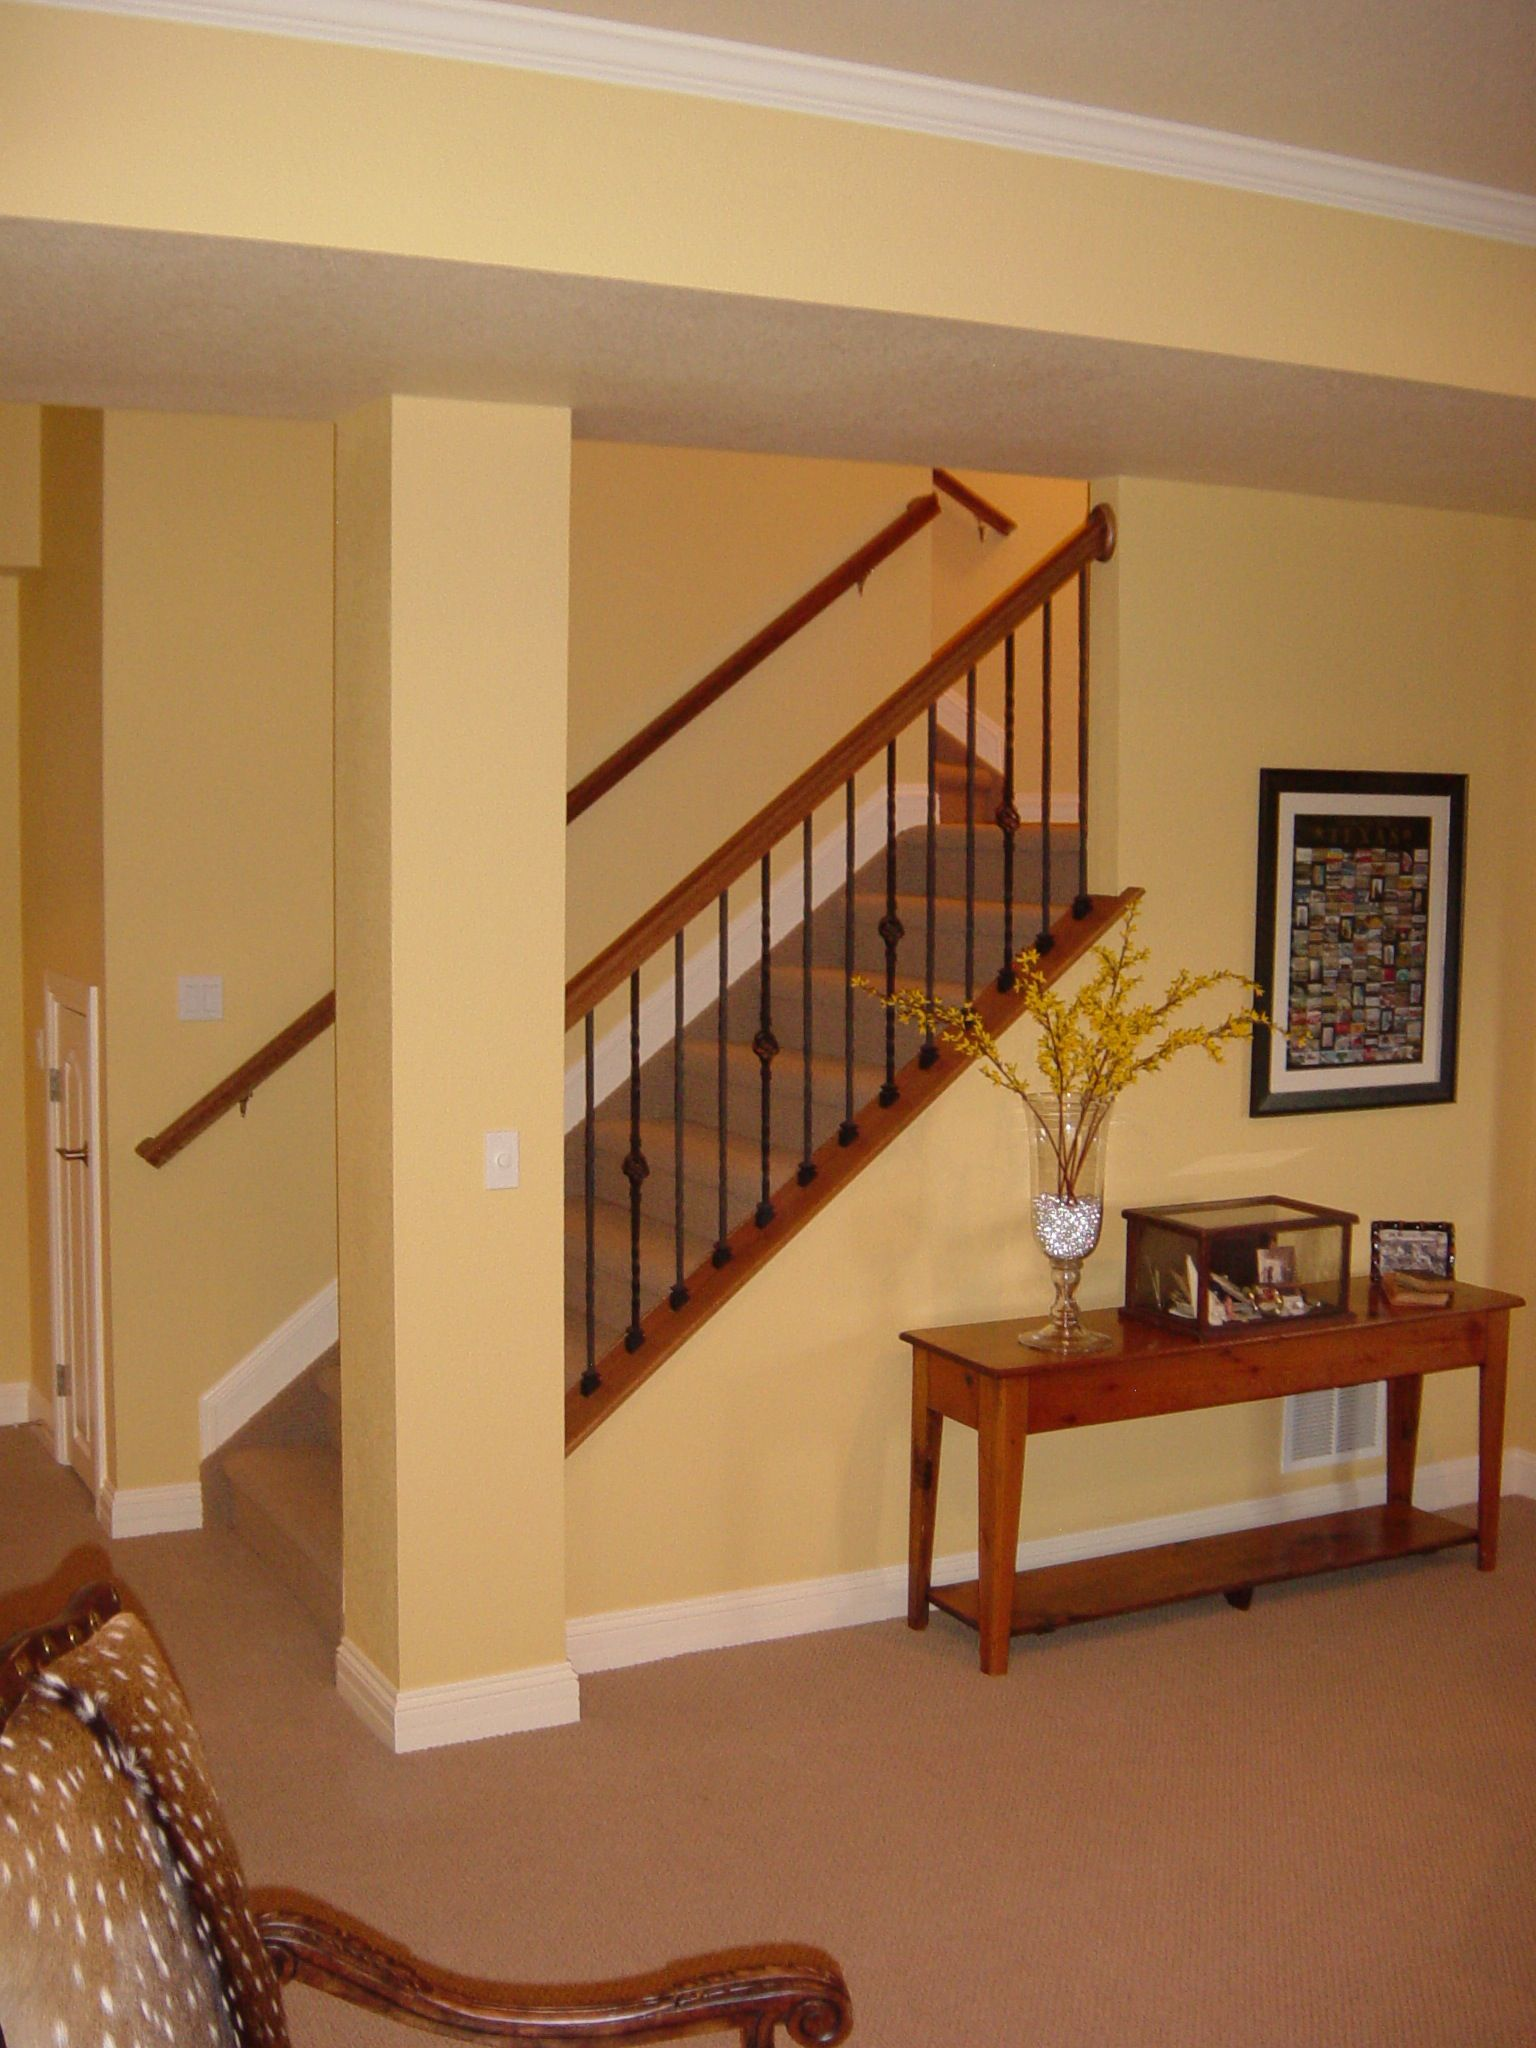 When homes are constructed with unfinished basements  the basement stairs not typically given aesthetic